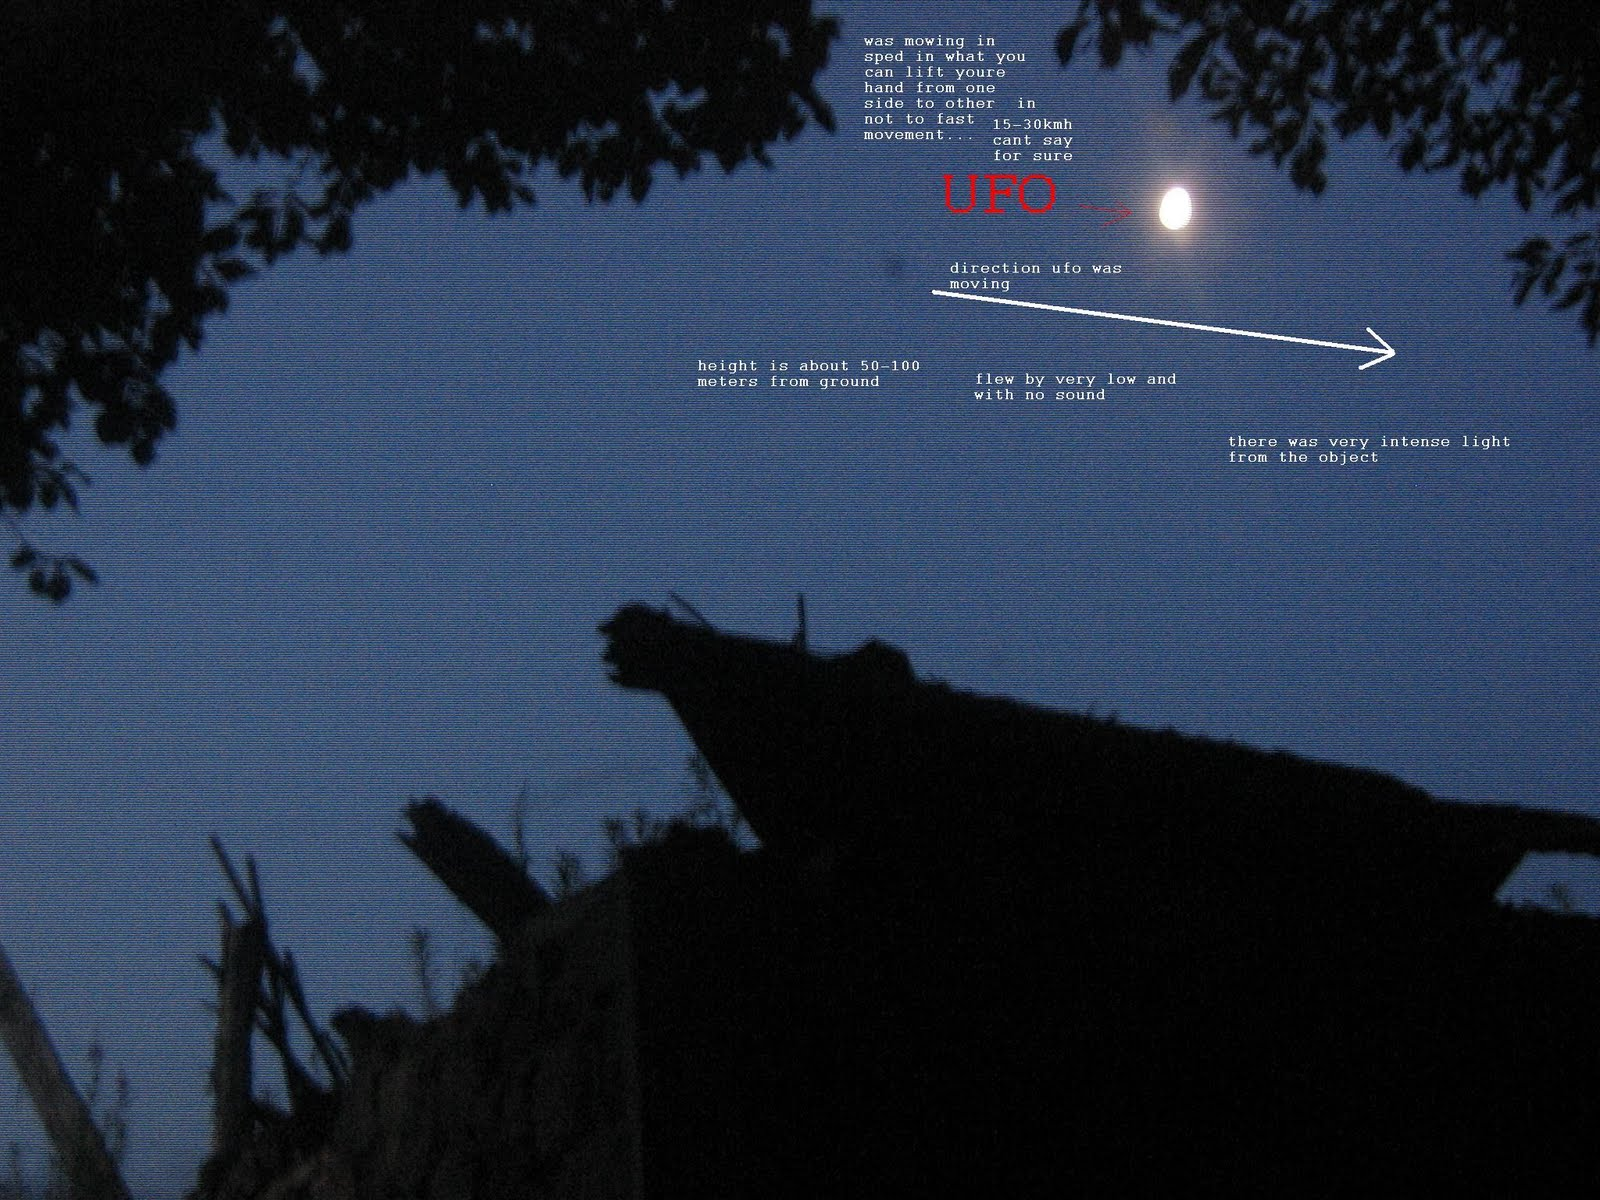 Ufo Activity Photographed And Submitted To Us From Australia And Latvia